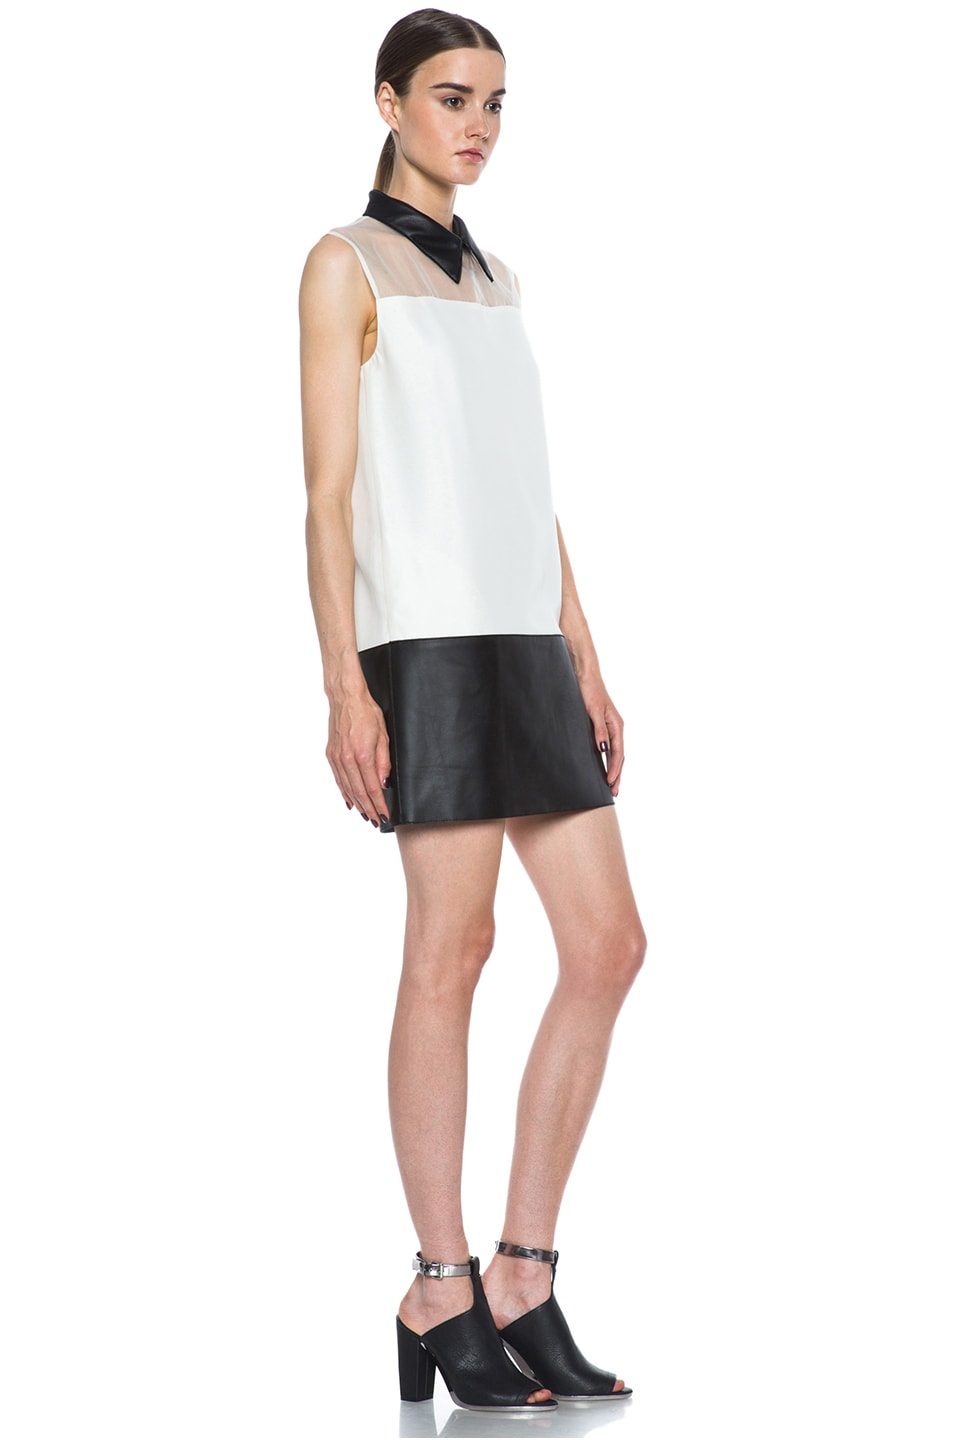 Image 3 of 3.1 phillip lim Tuxedo Viscose Shift Dress in Alabaster & Black